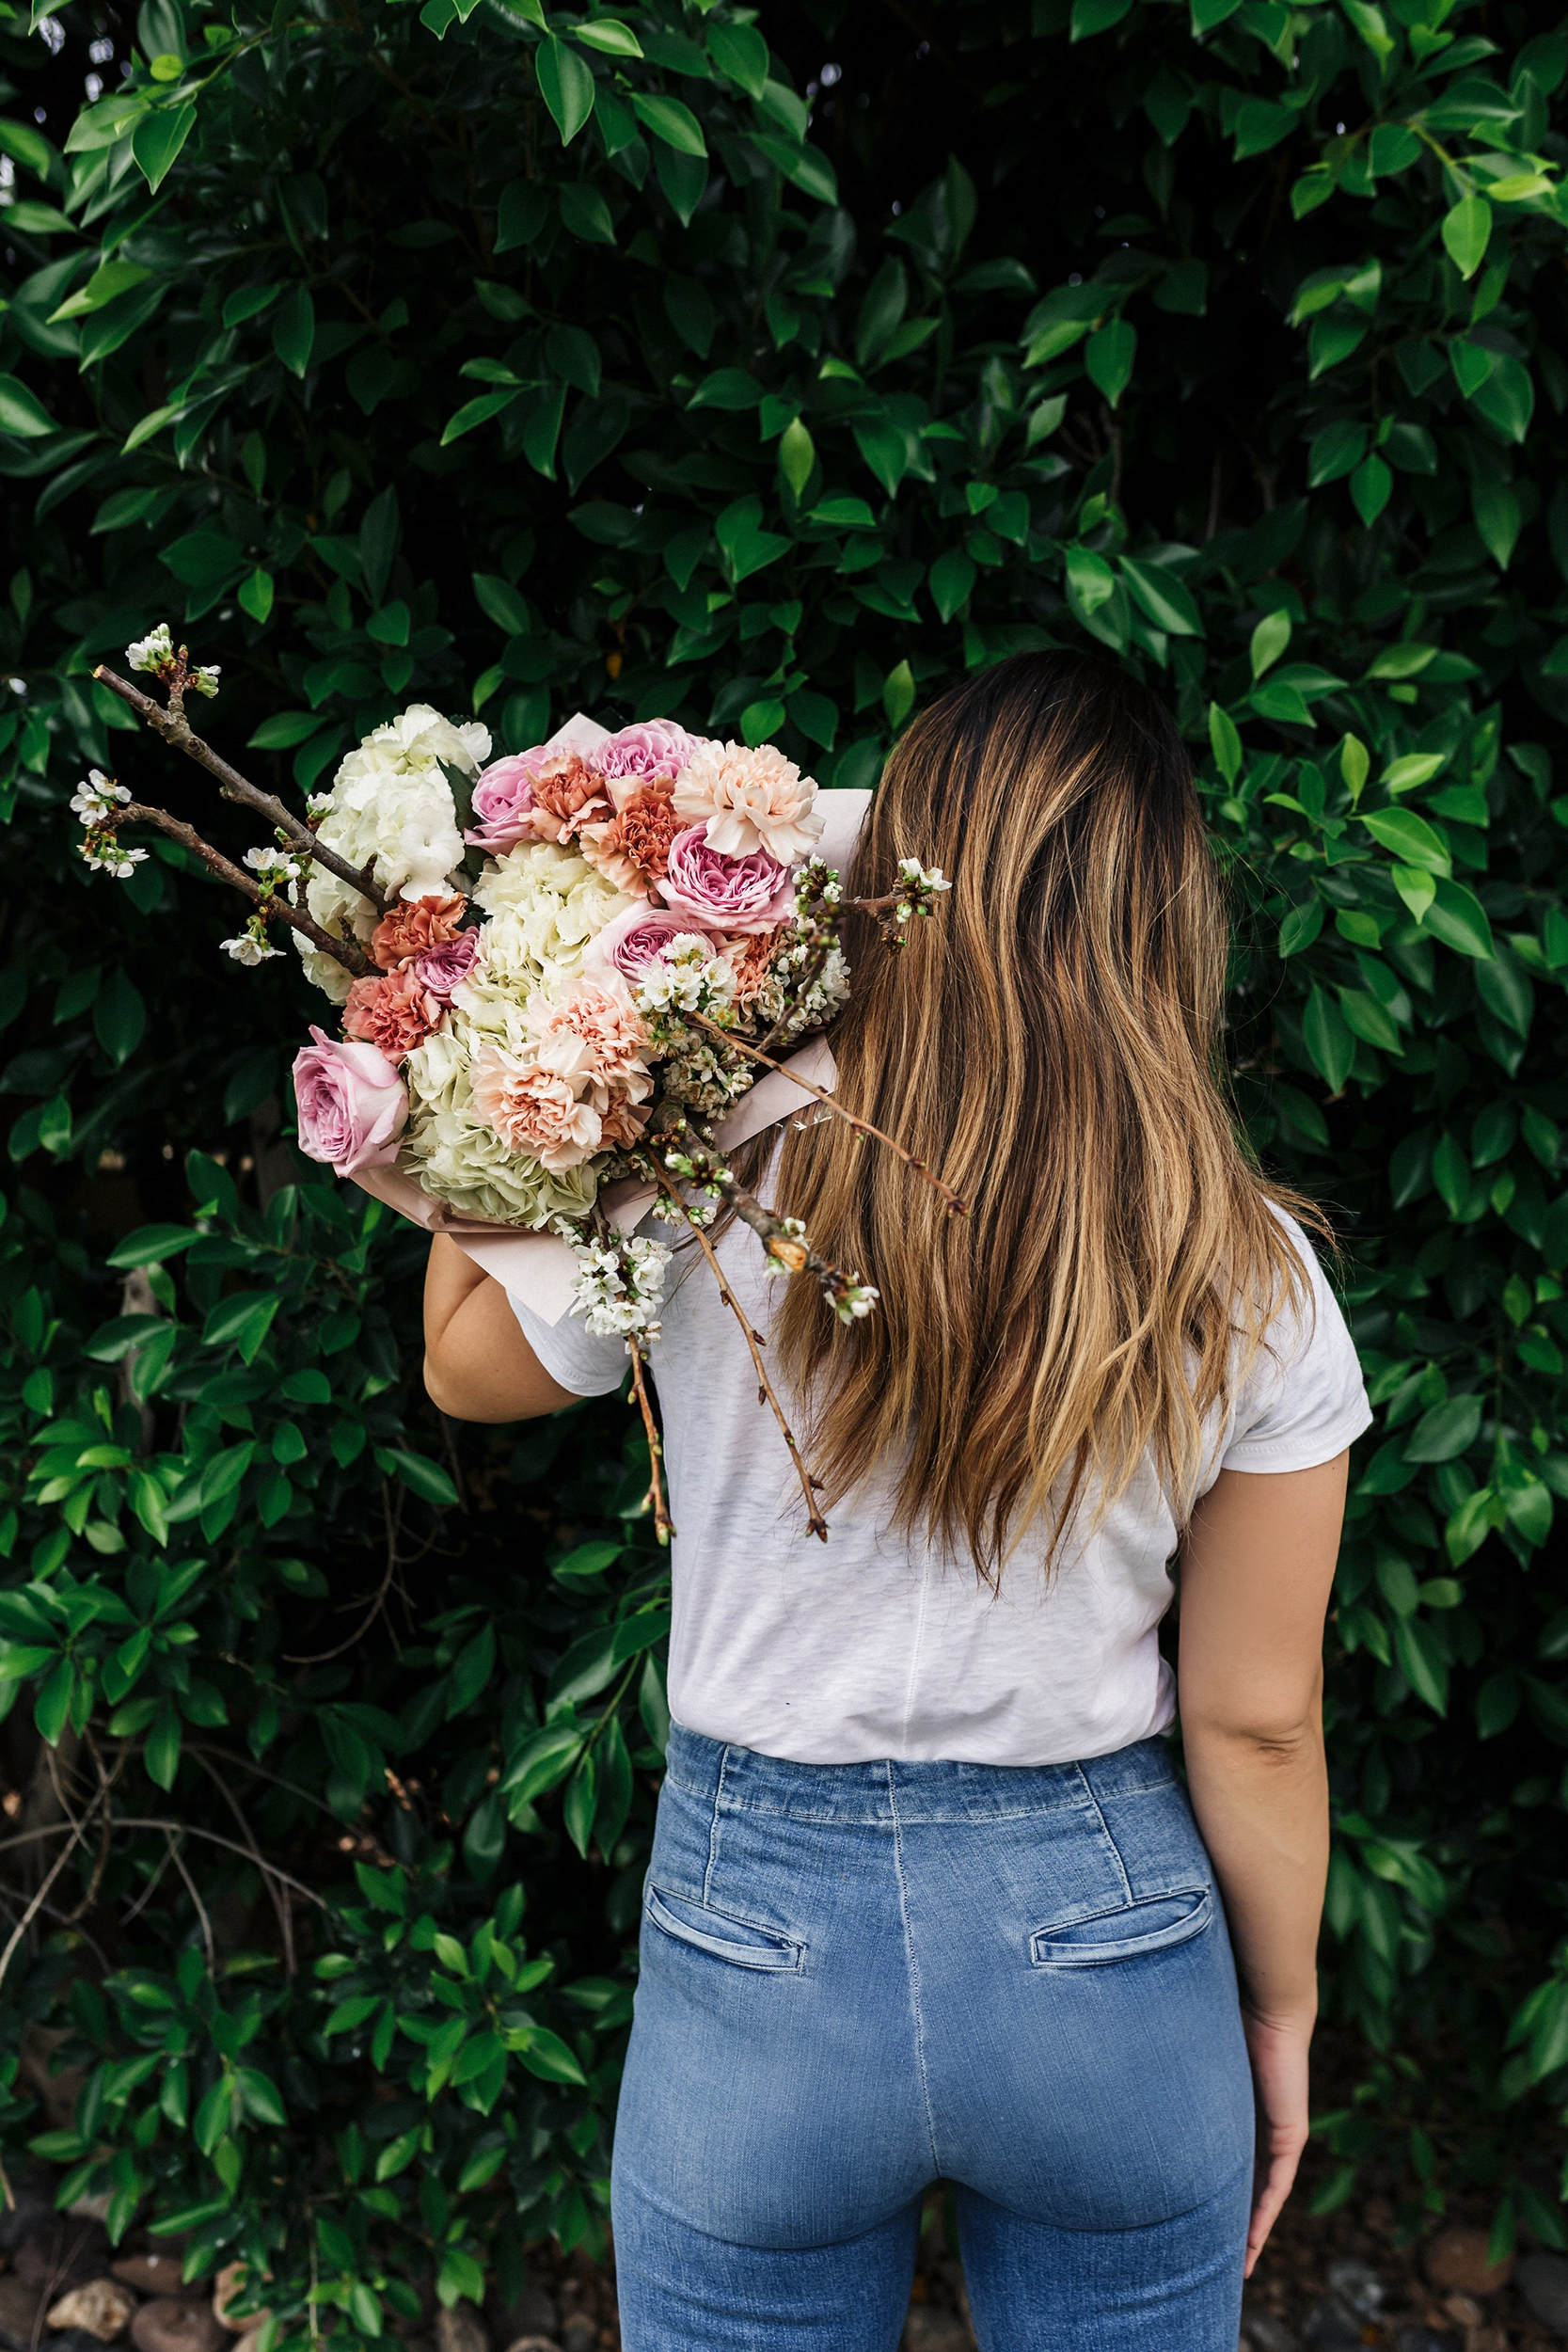 Flowers, white tee and jeans